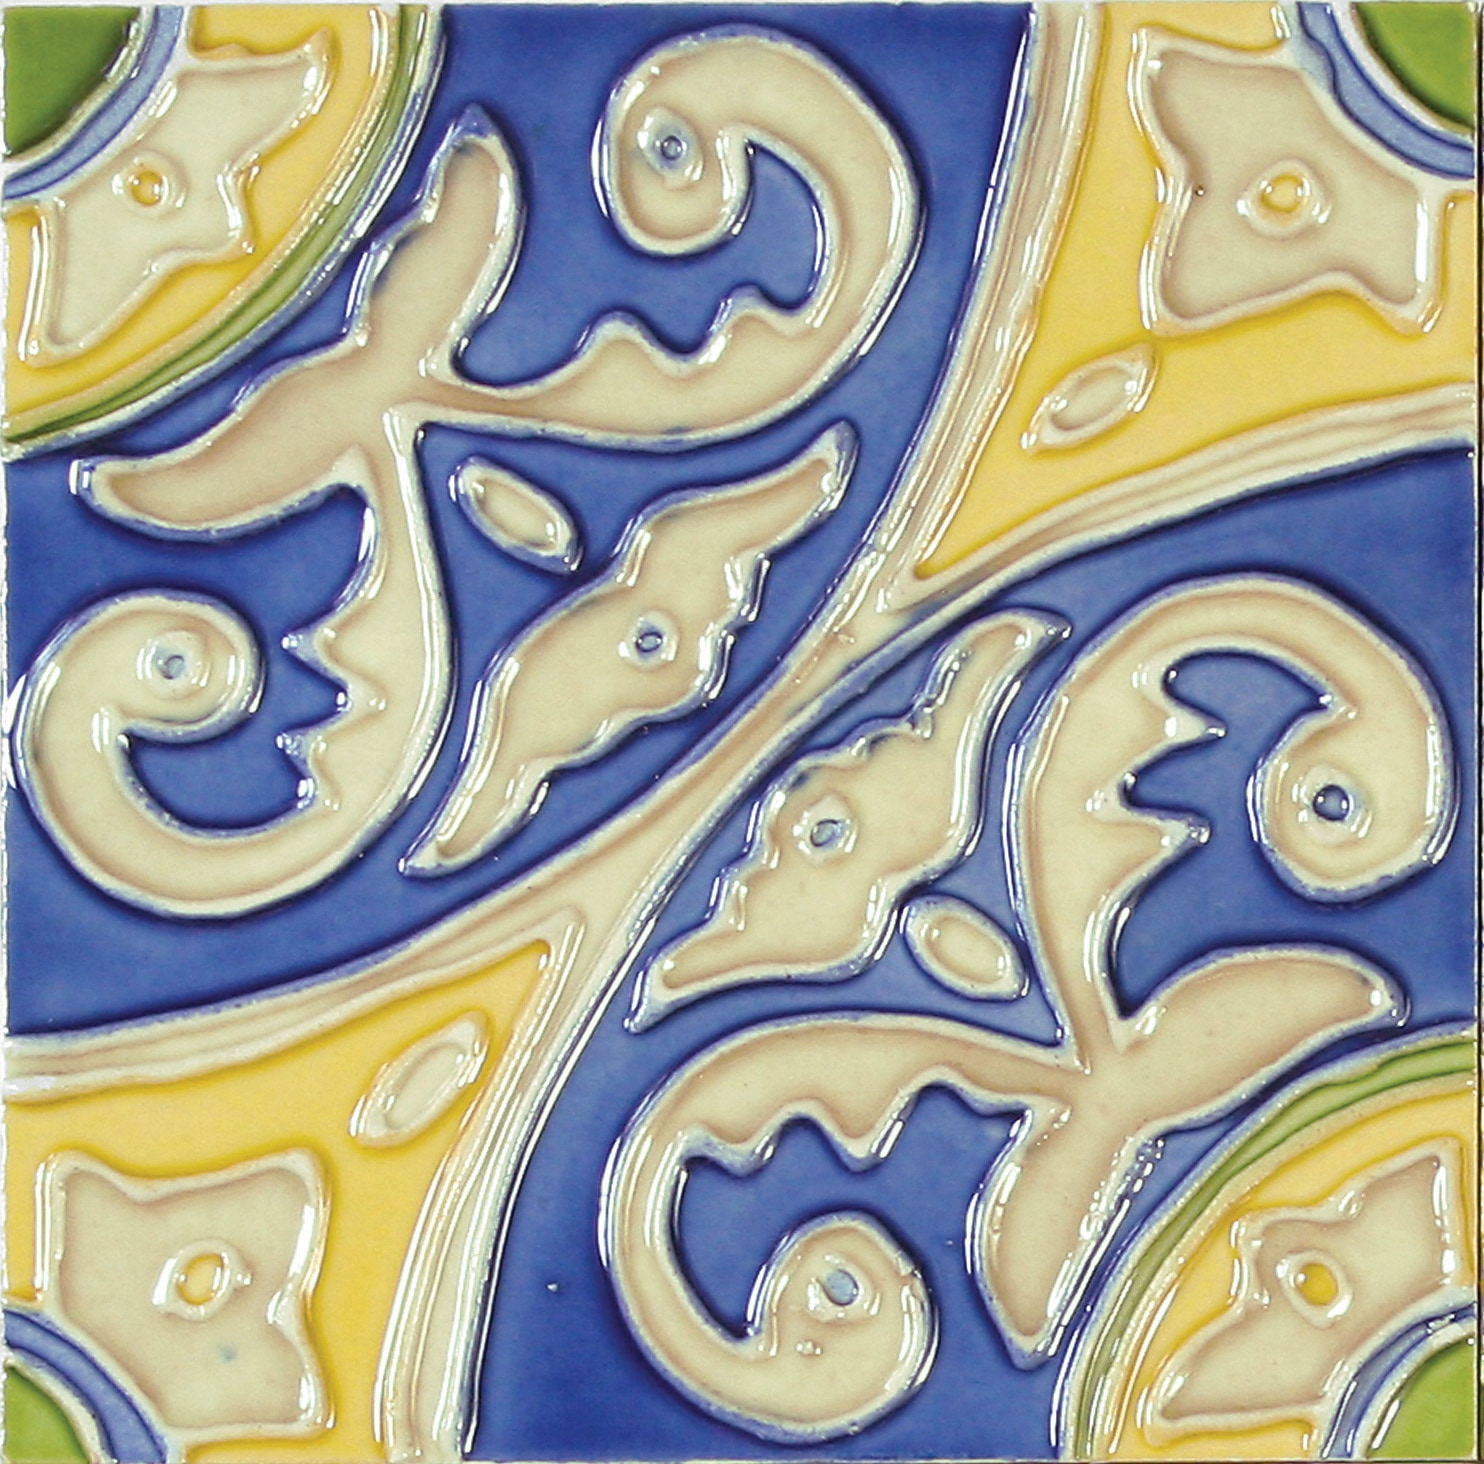 Hand-Painted Ceramic Glazed Wall Tile in Circulo Hand-Painted Ceramic Glazed Wall Tile in Circulo 0